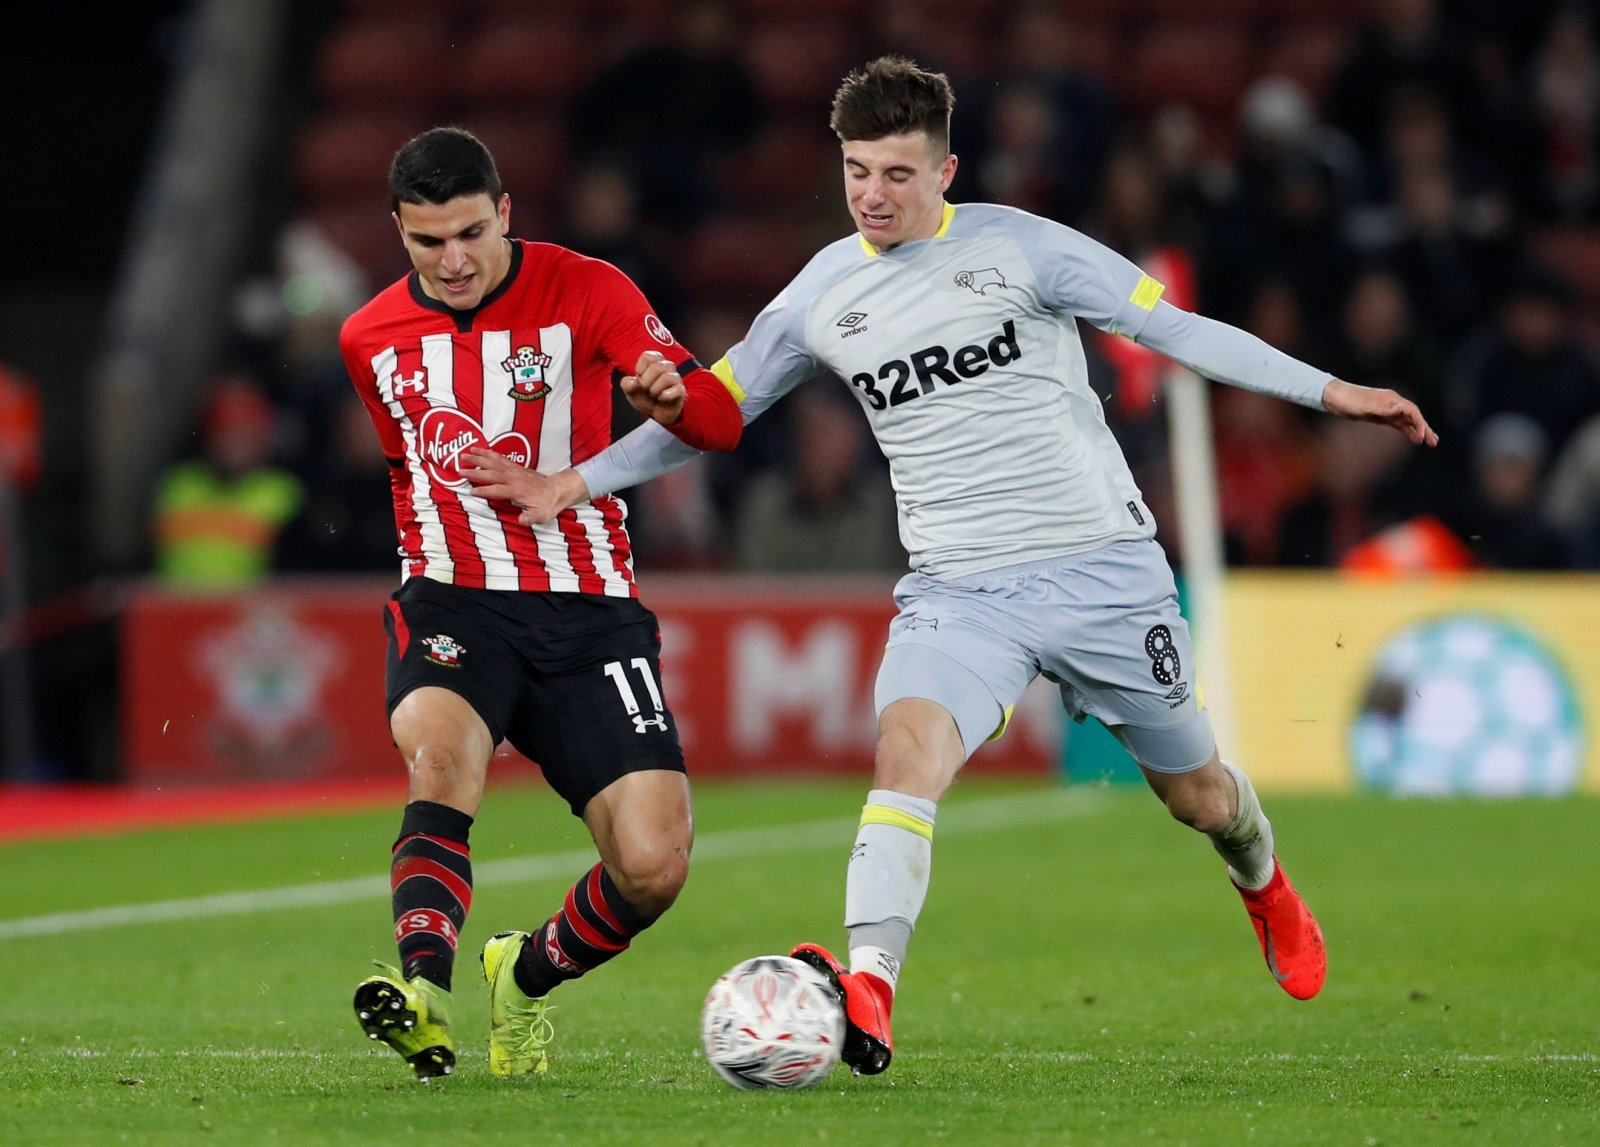 Southampton: Ralph Hasenhuttl cannot afford for Moussa Djenepo to flop like Mohamed Elyounoussi